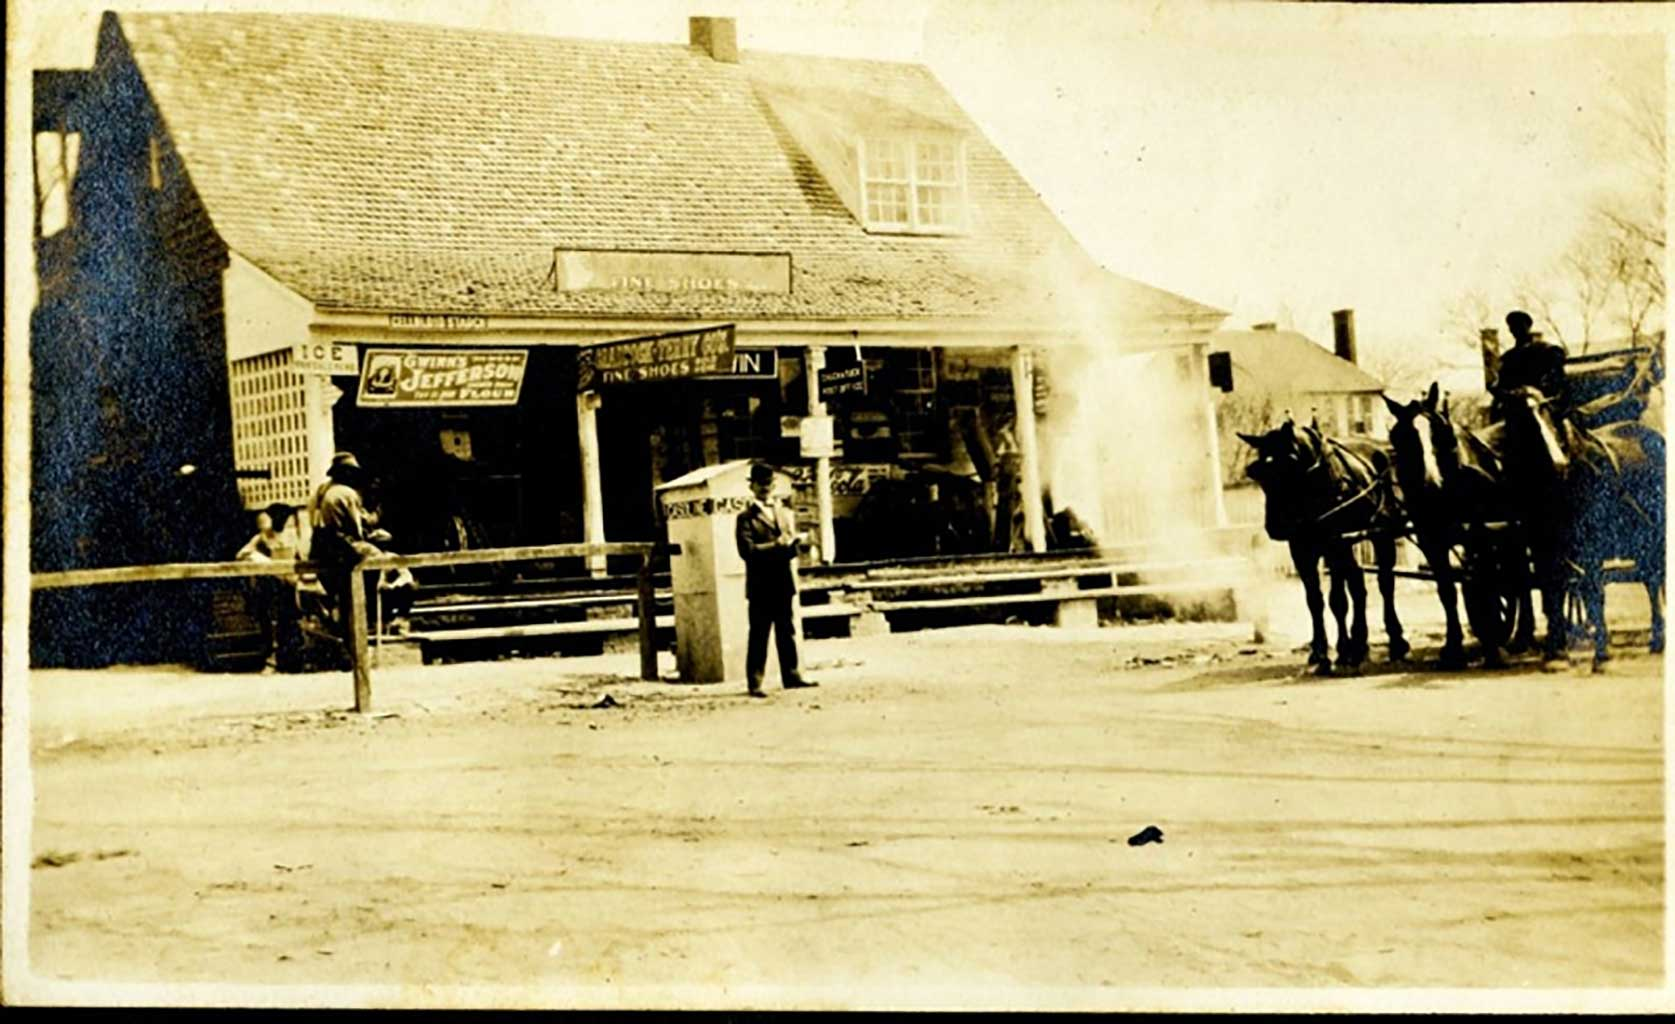 b-w-godwin-store-and-chuckatuck-post-office-circa-1895-photo-from-angus-hines